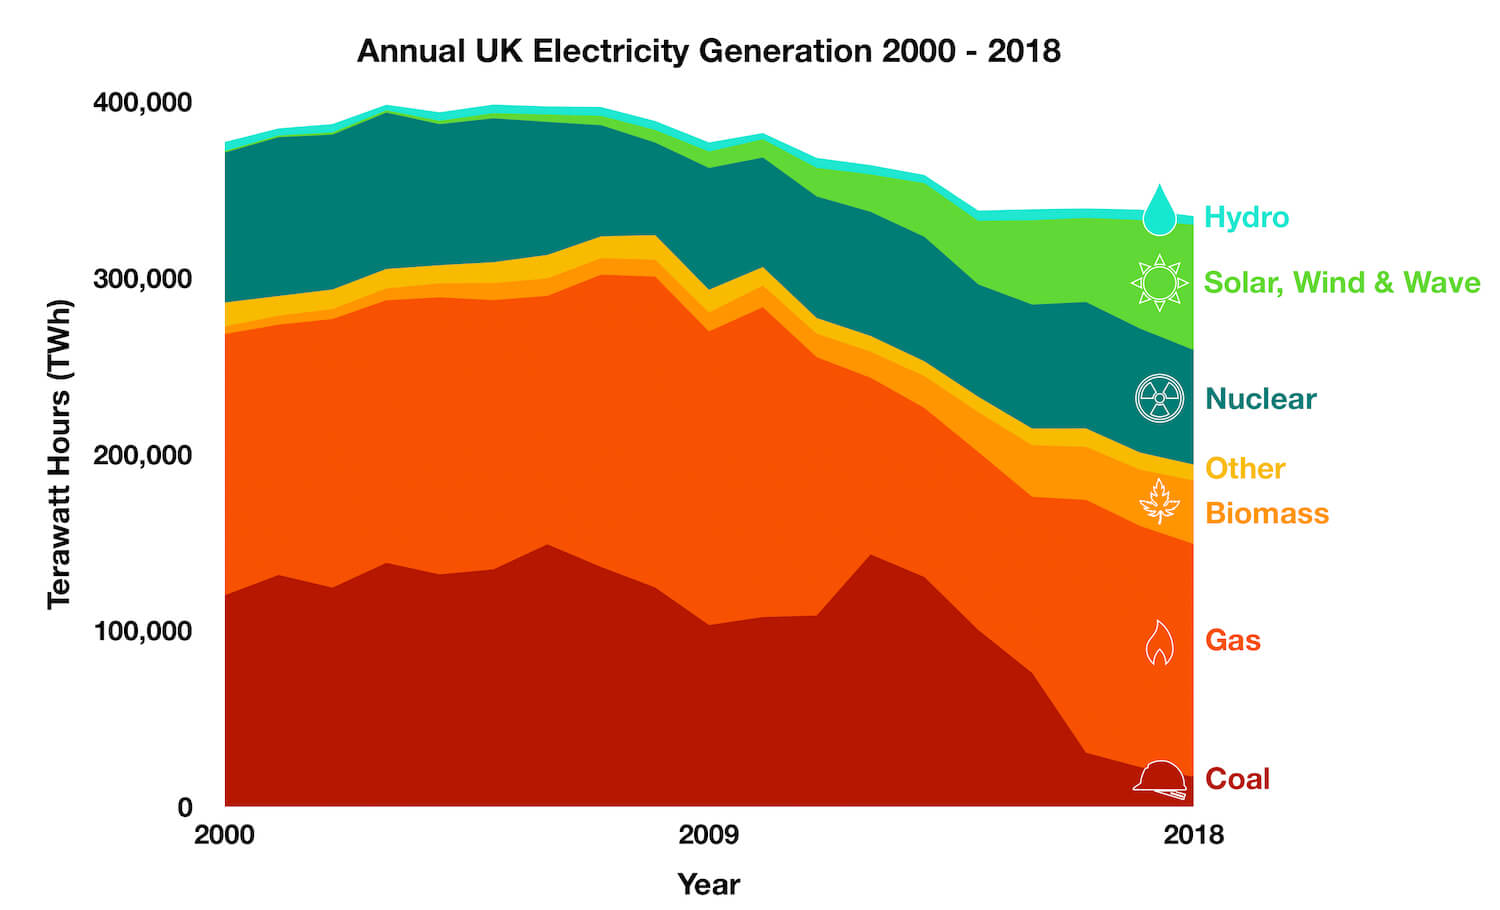 Annual UK Electricity Generation and Energy Mix 2000 - 2018